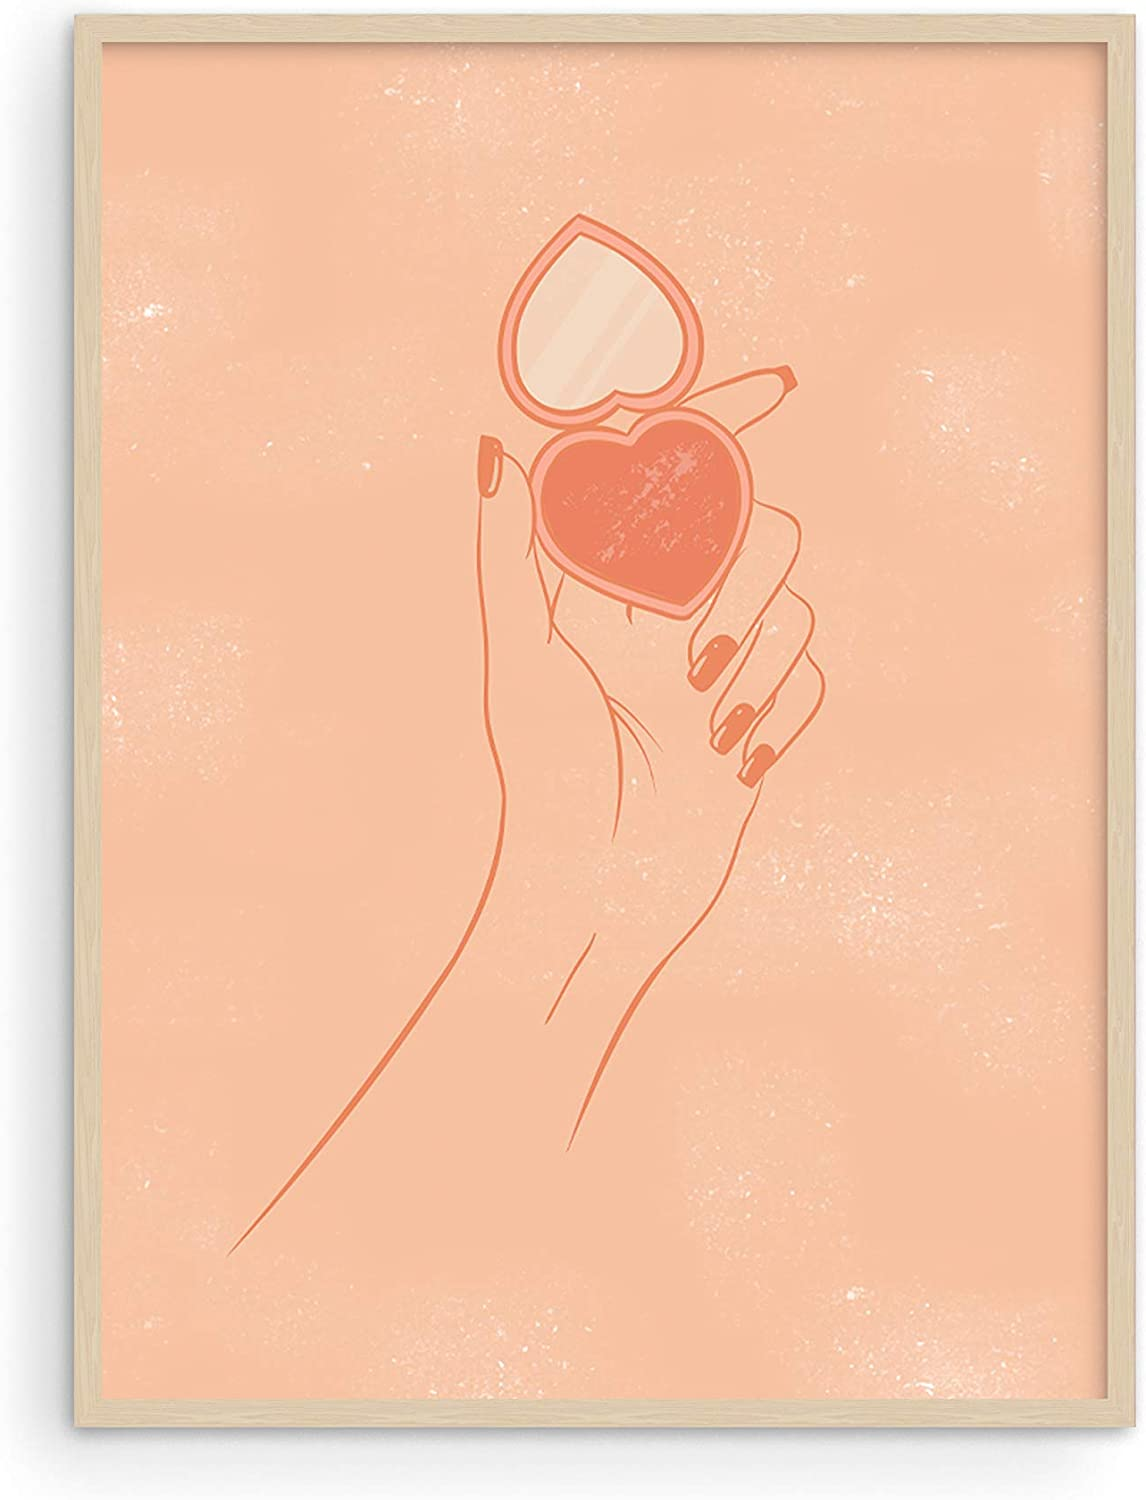 Haus and Hues Makeup Wall Art and Peach Wall Decor - Makeup Pictures Wall Decor and Aesthetic Posters for Teen Girls   Fashionista Wall Decor and Makeup Posters UNFRAMED 12